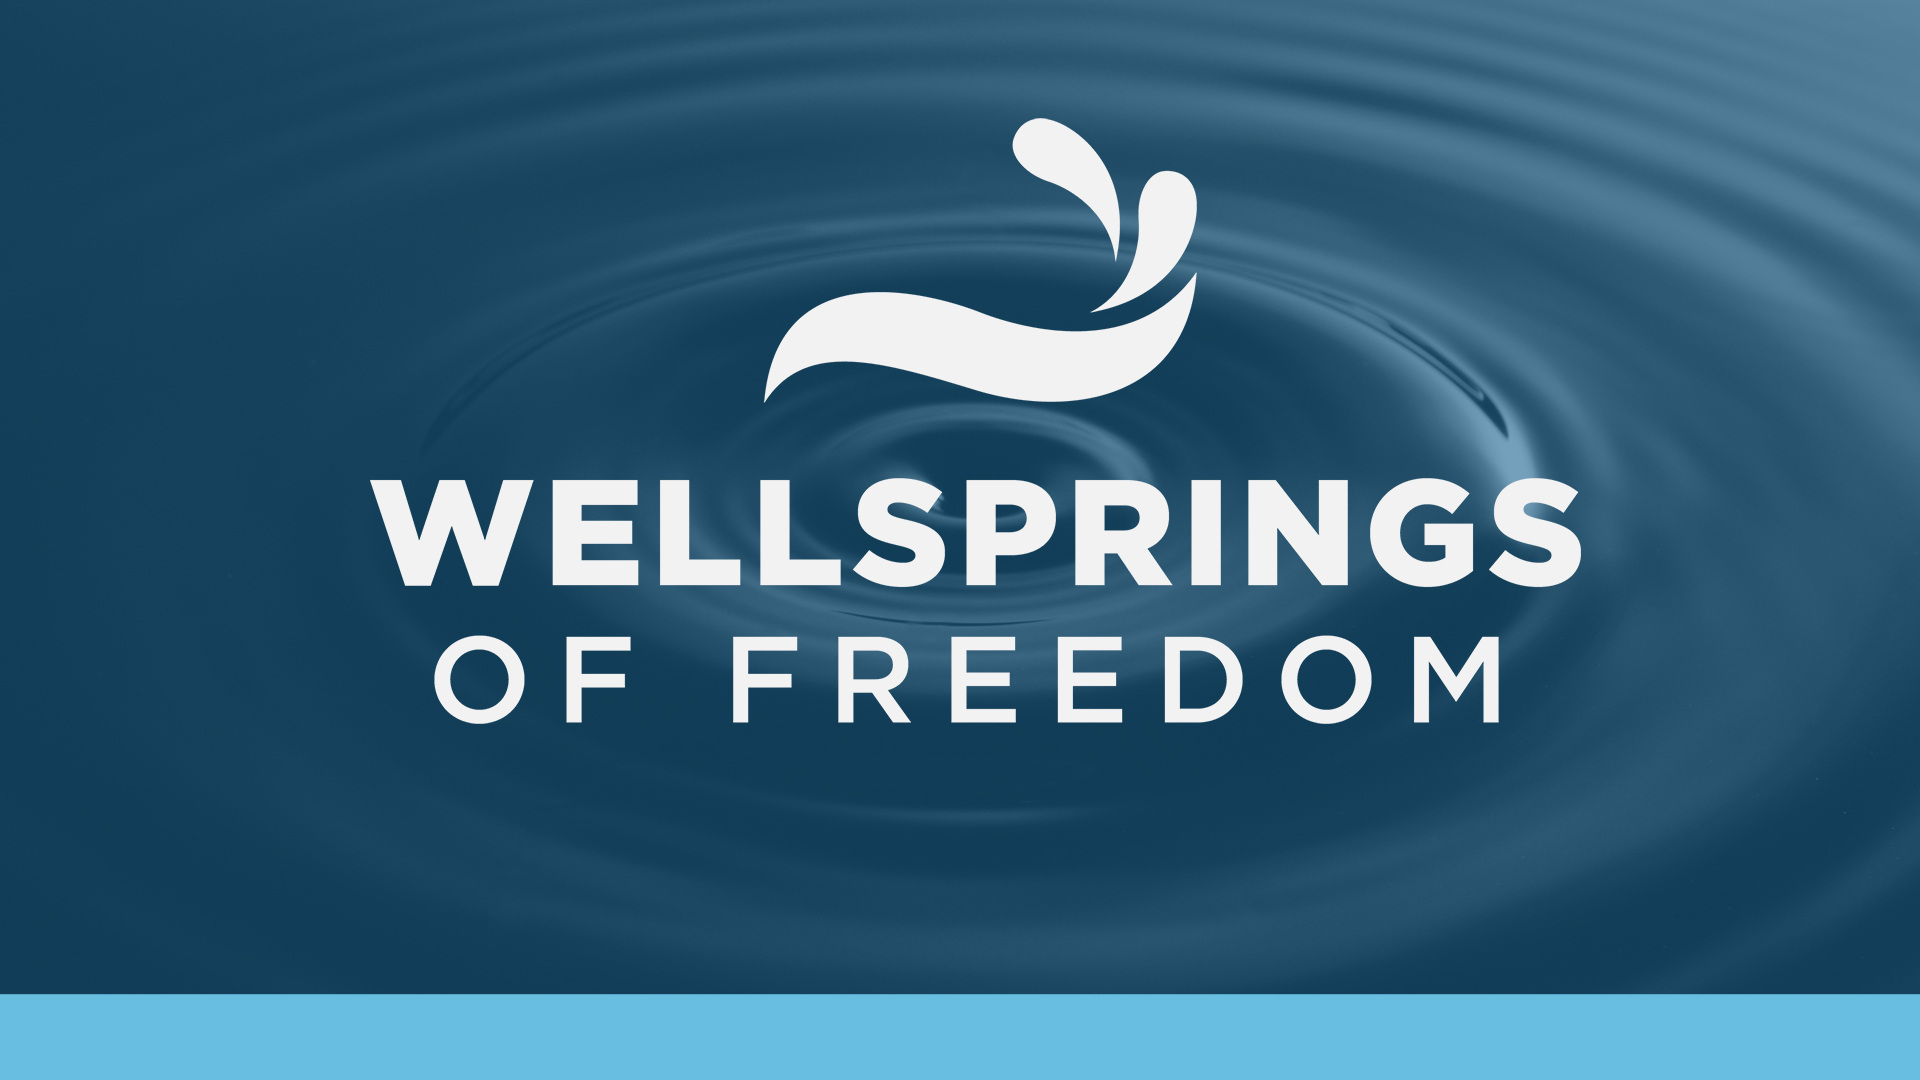 Wellsprings of Freedom